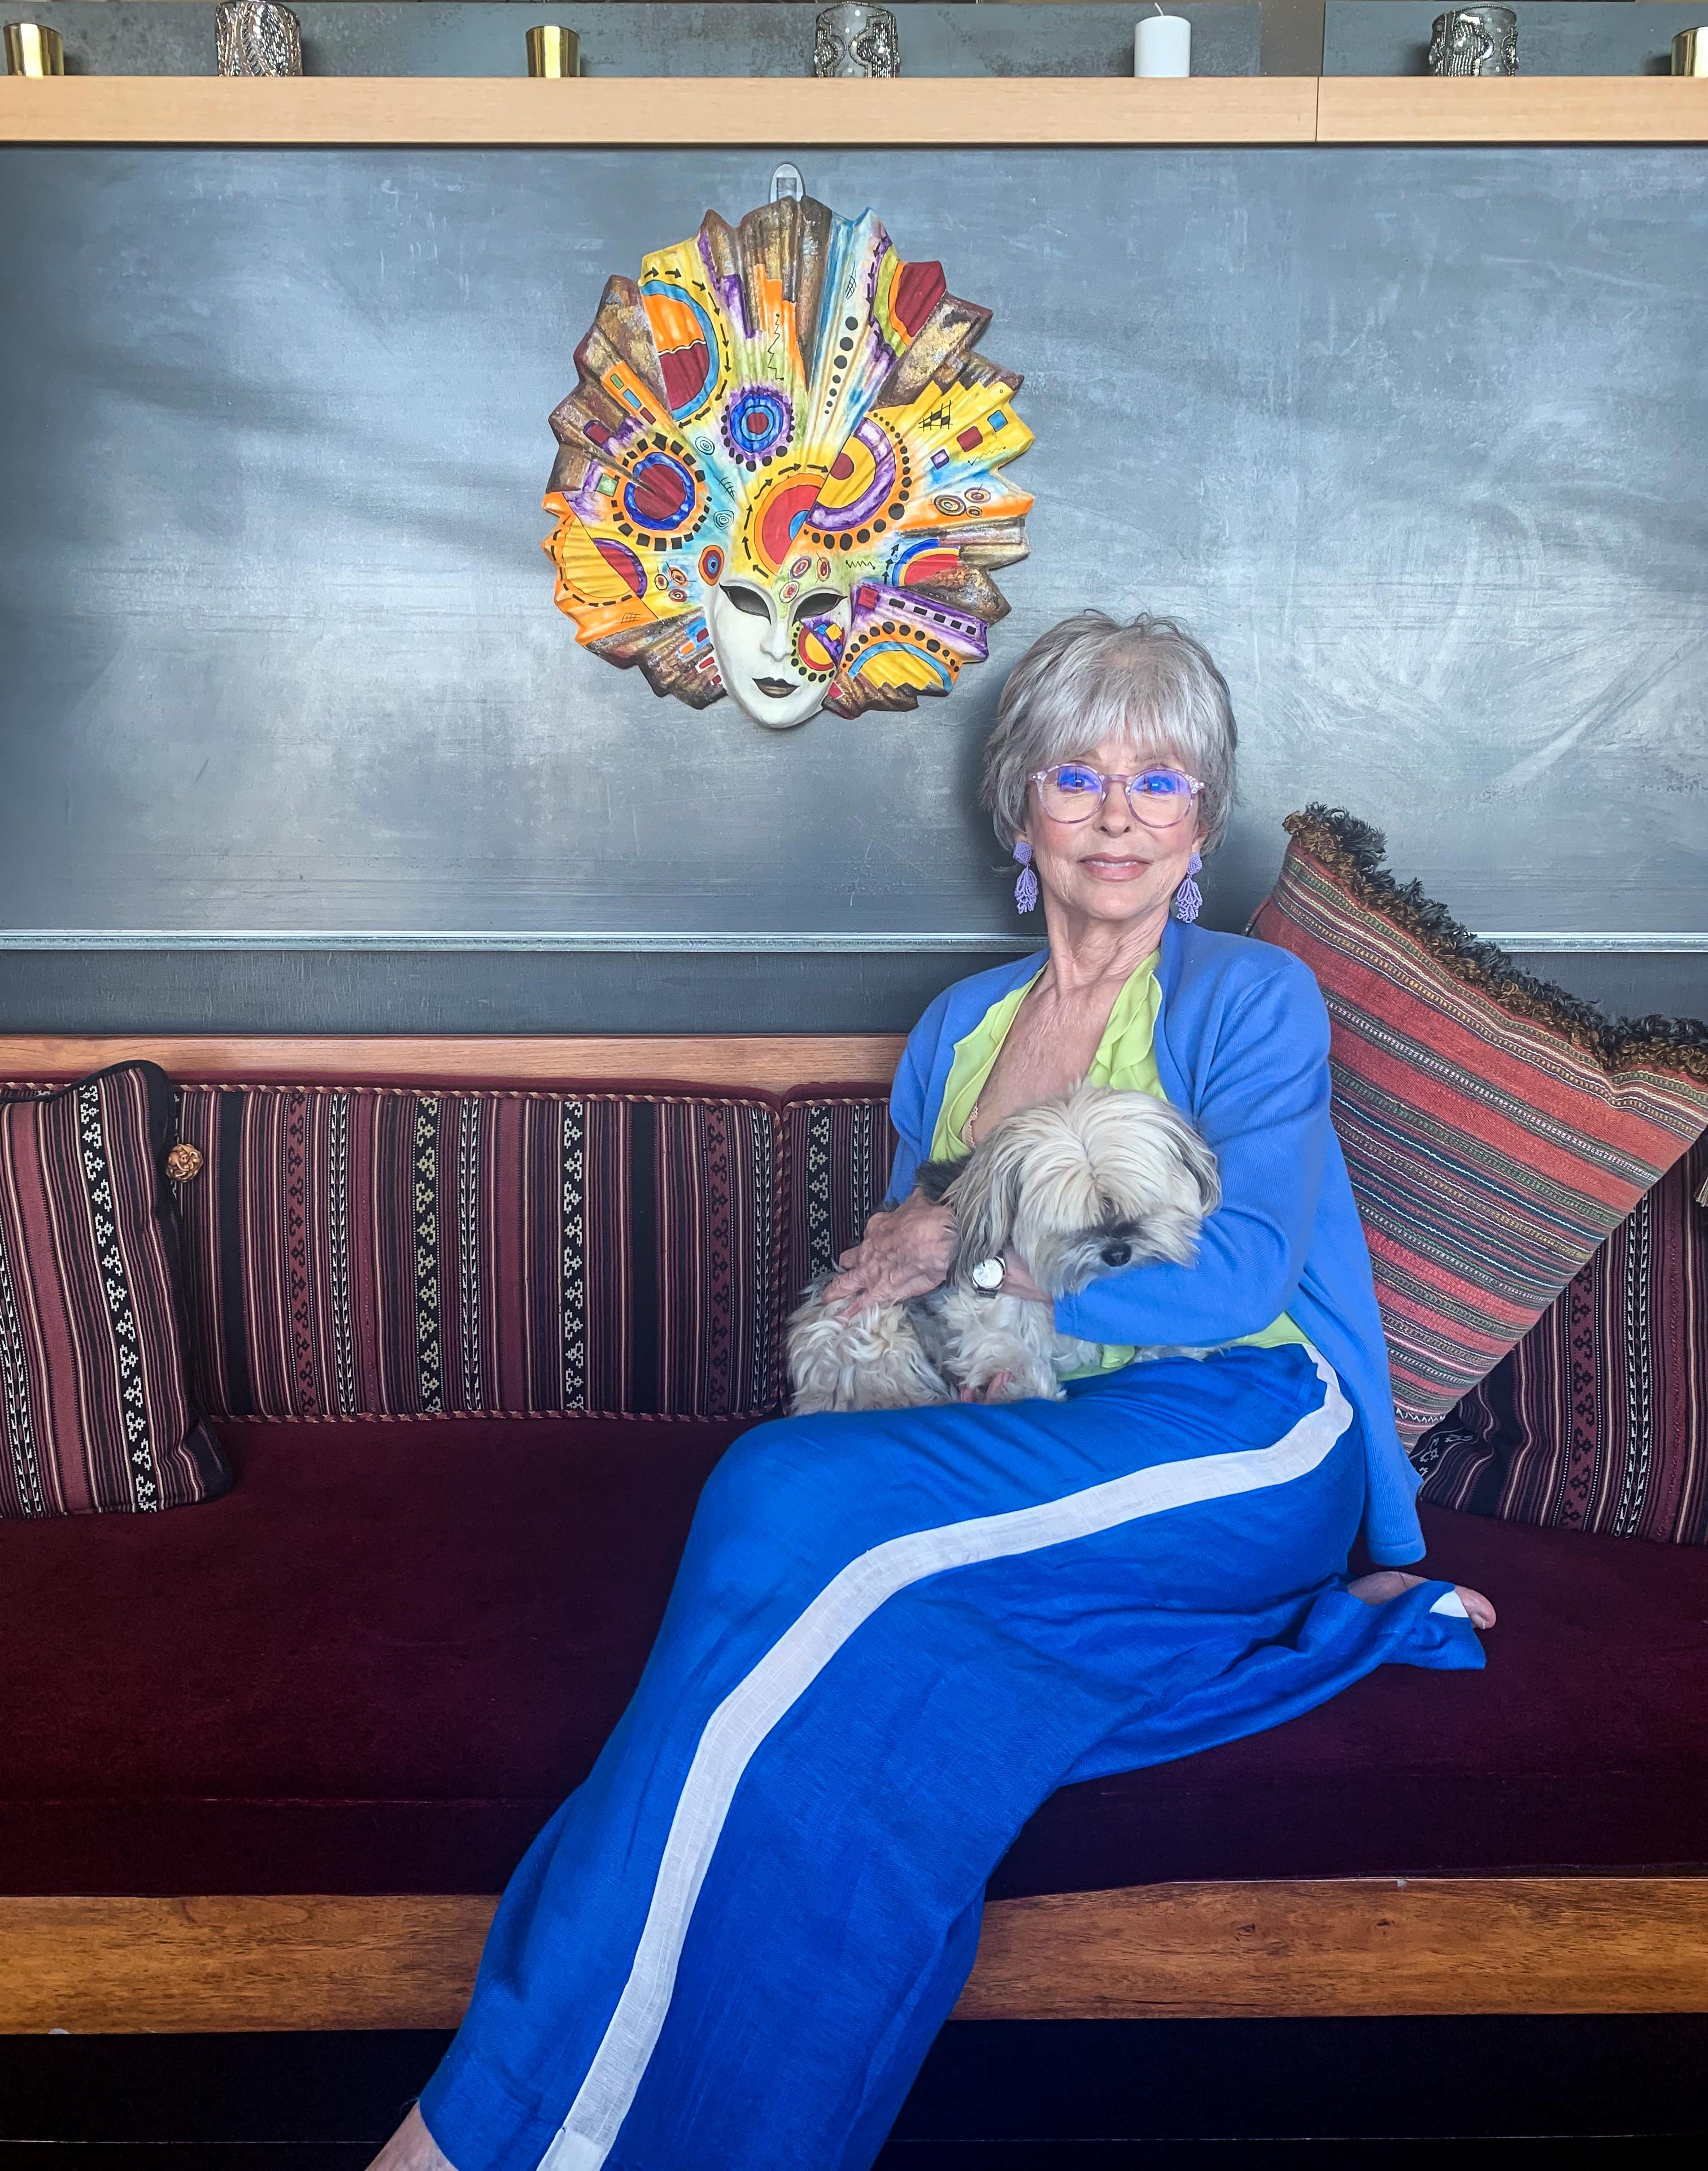 Rita Moreno poses for a portrait in her home in Berkeley, Calif., on July 27, 2020. Moreno was born in Puerto Rico and brought to New York as a child. She said being the only Spanish speaker in her kindergarten class was frightening, but she made the decision to be brave. It's a decision she's continued to make during her 70-year career.